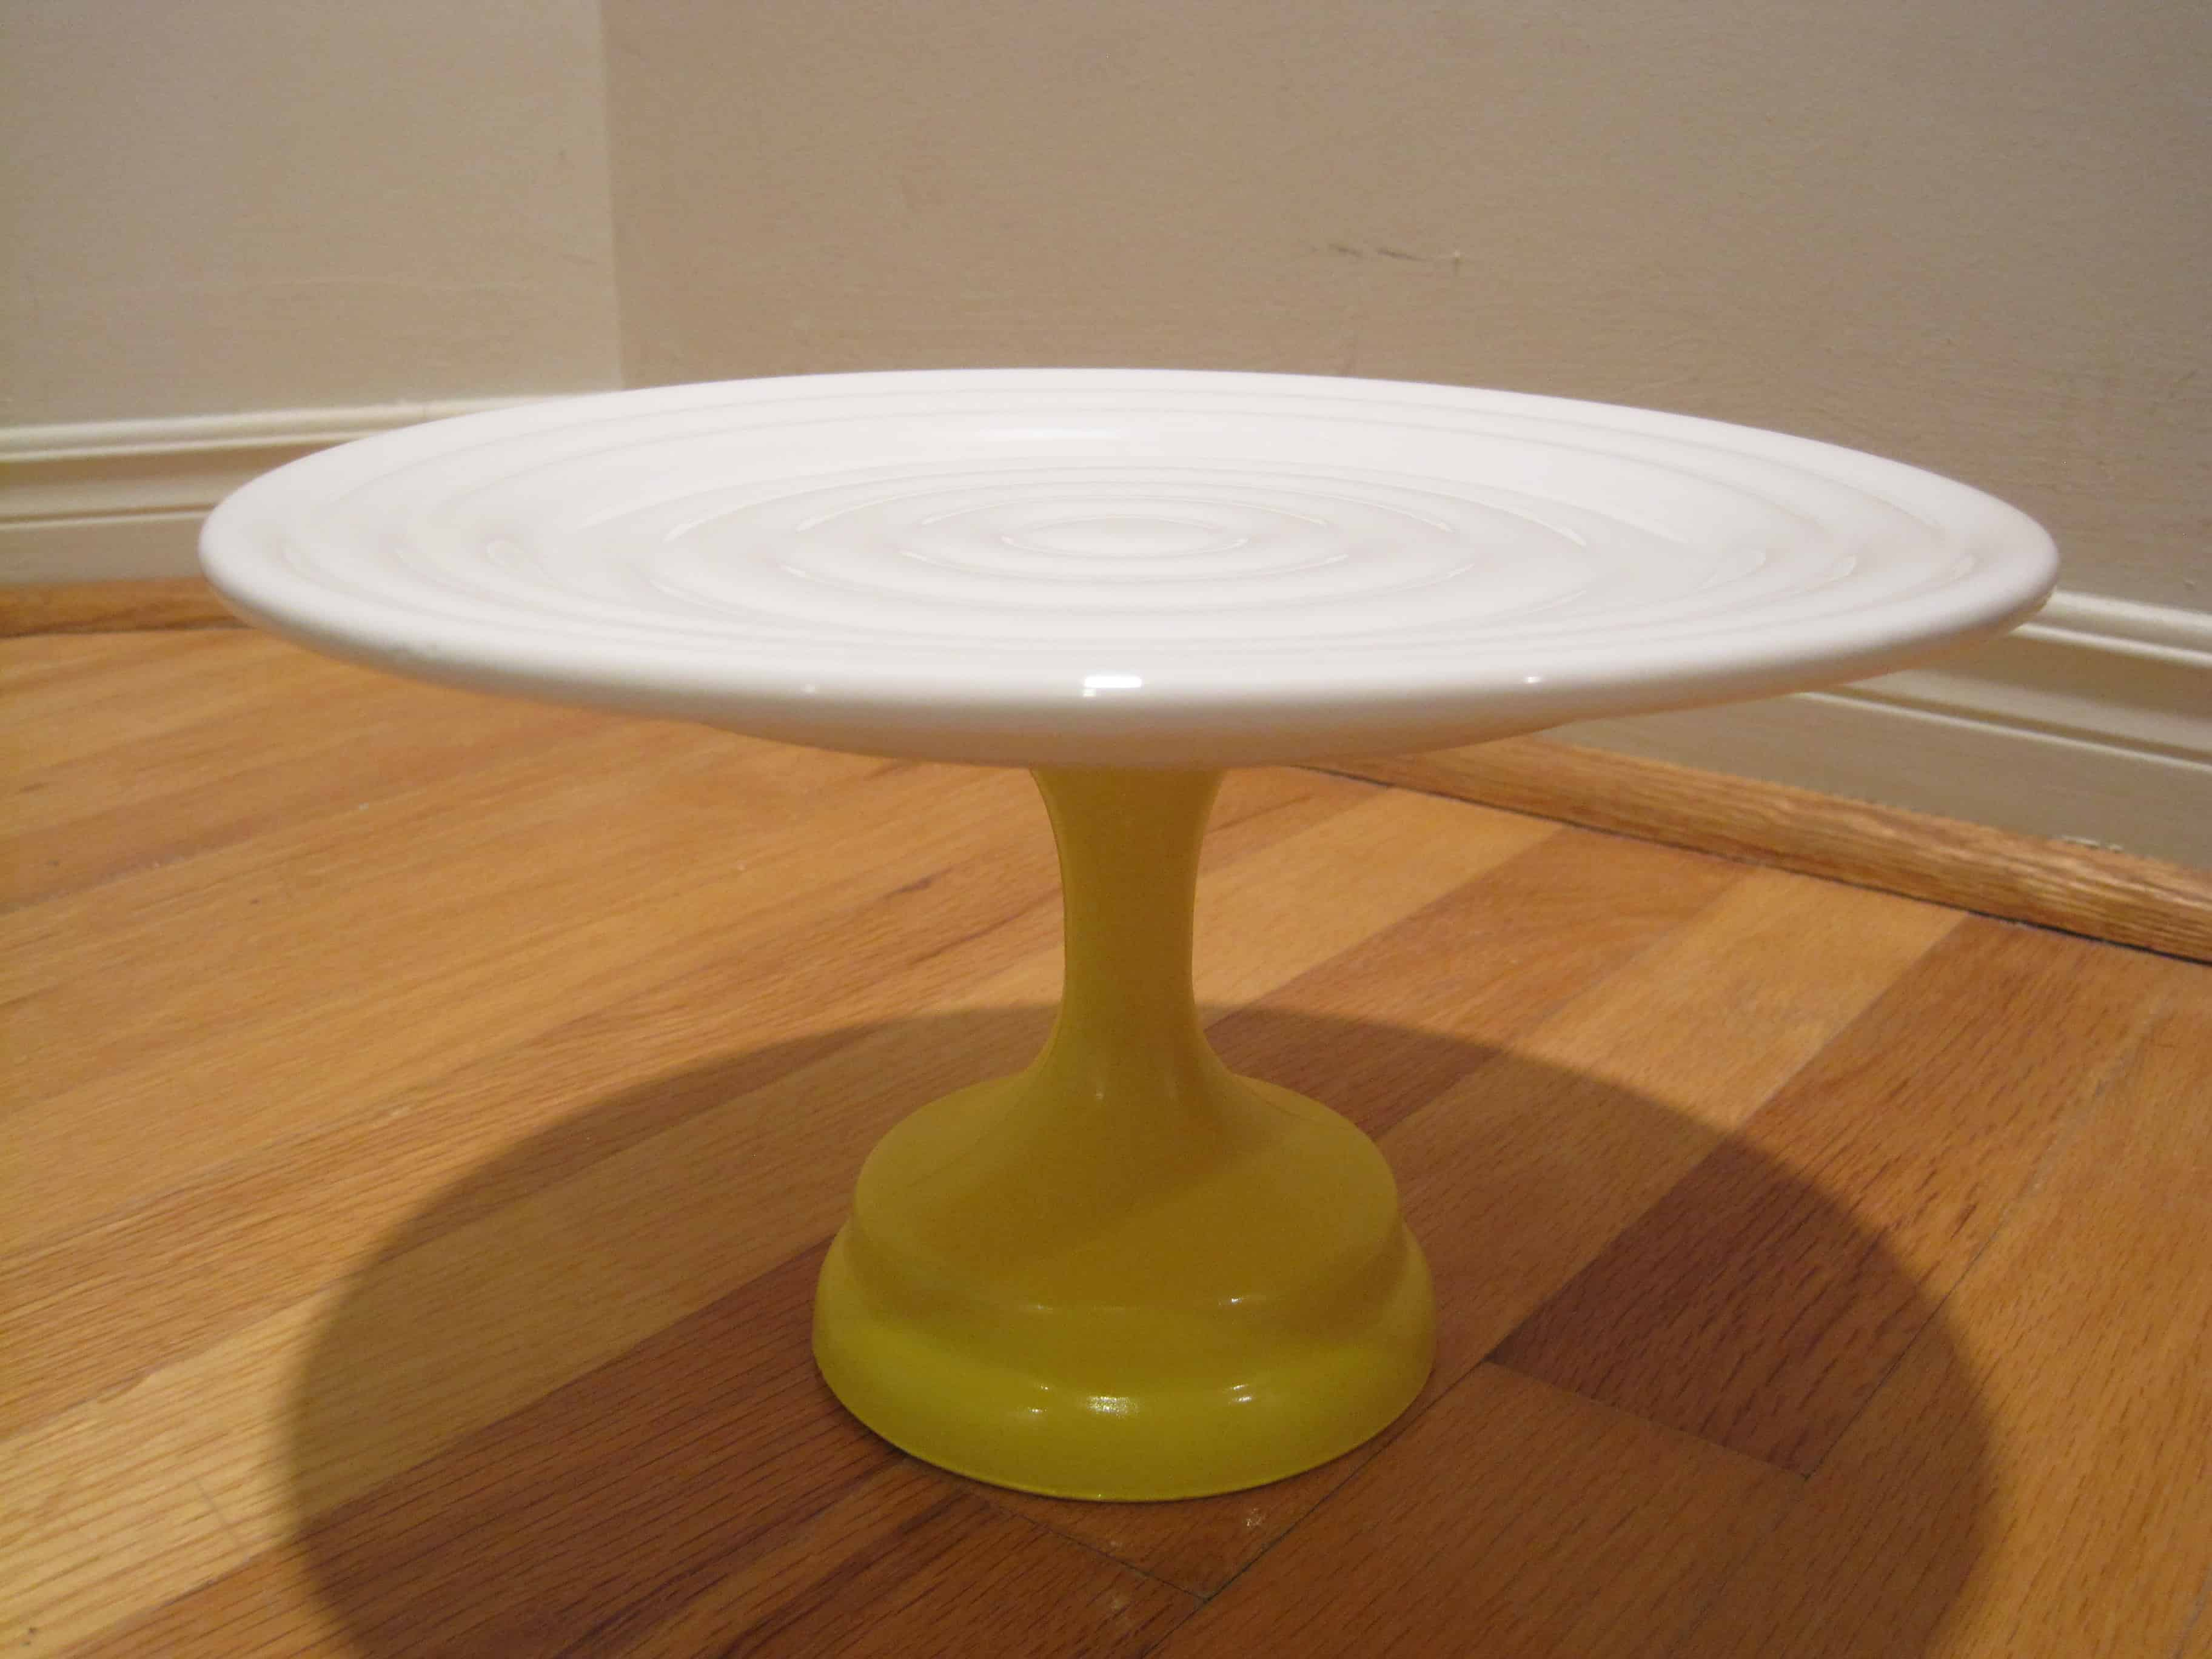 Painted wine glass and paint cupcake stand